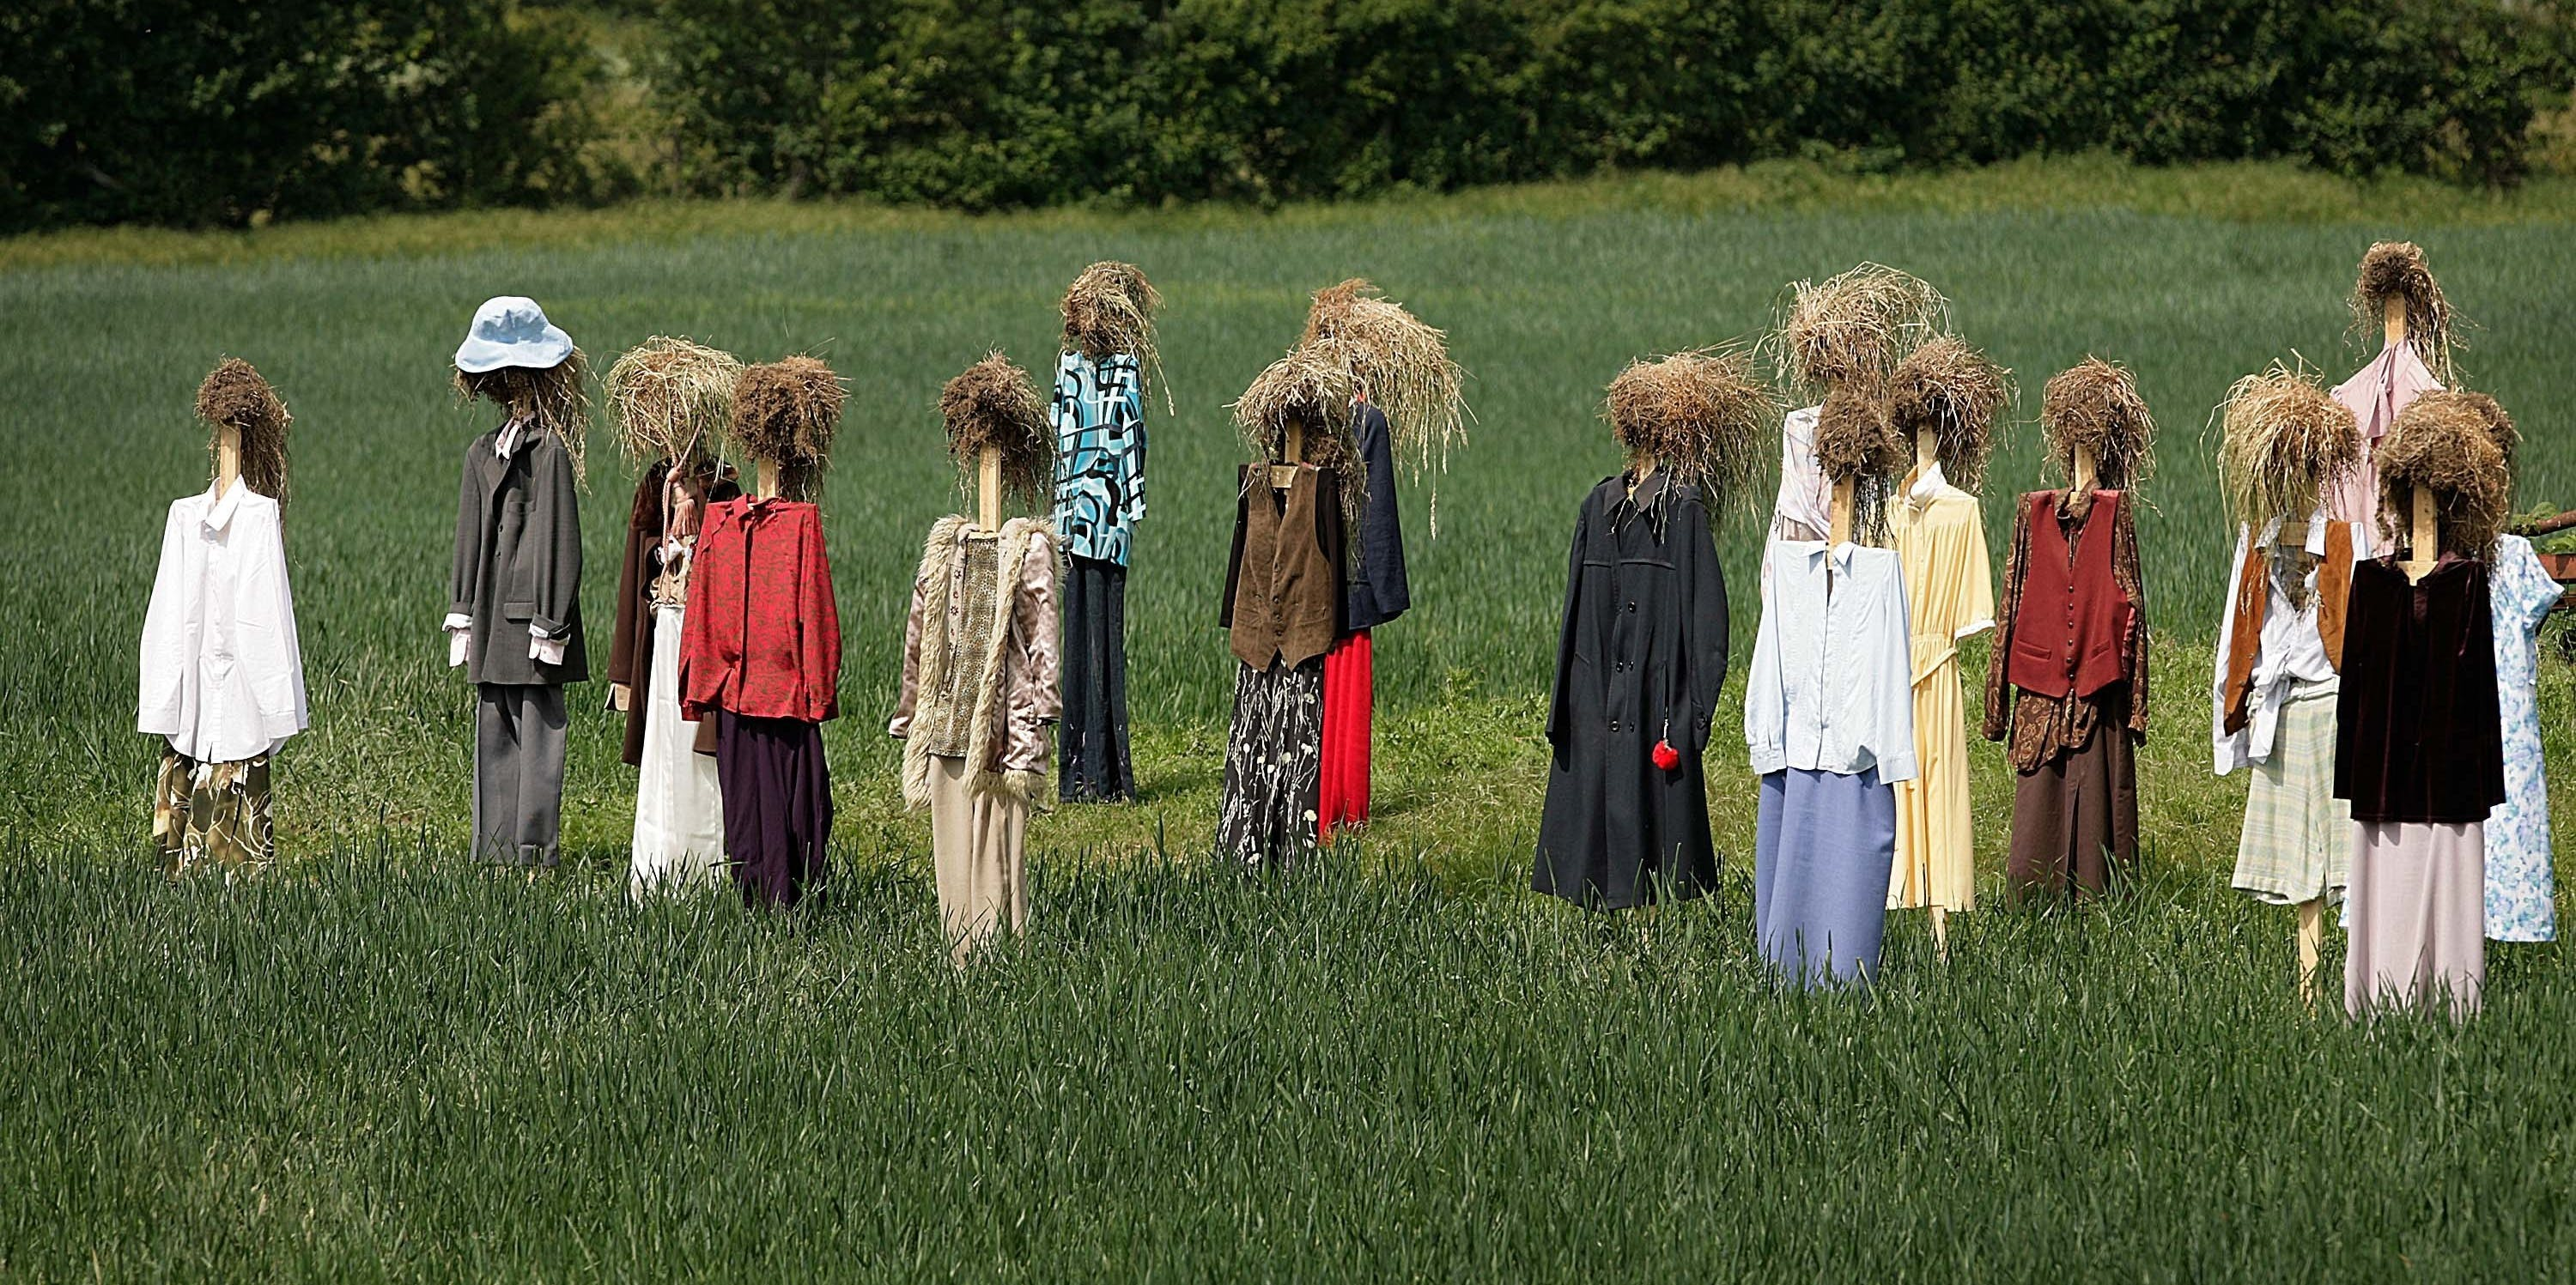 Locals look at Finnish artist Reijo Kela's scarecrow installation 'Hei People'  on May 25, 2007 in Shorne, England. The Finnish word Hei means hello and Kela has installed 130 scarecrows at Amhurst Fort in Chatham and a further 200 in a wheat field near the village of Shorne, Kent. 646 scarecrows will appear in surprise installations all over North Kent in the next few weeks.